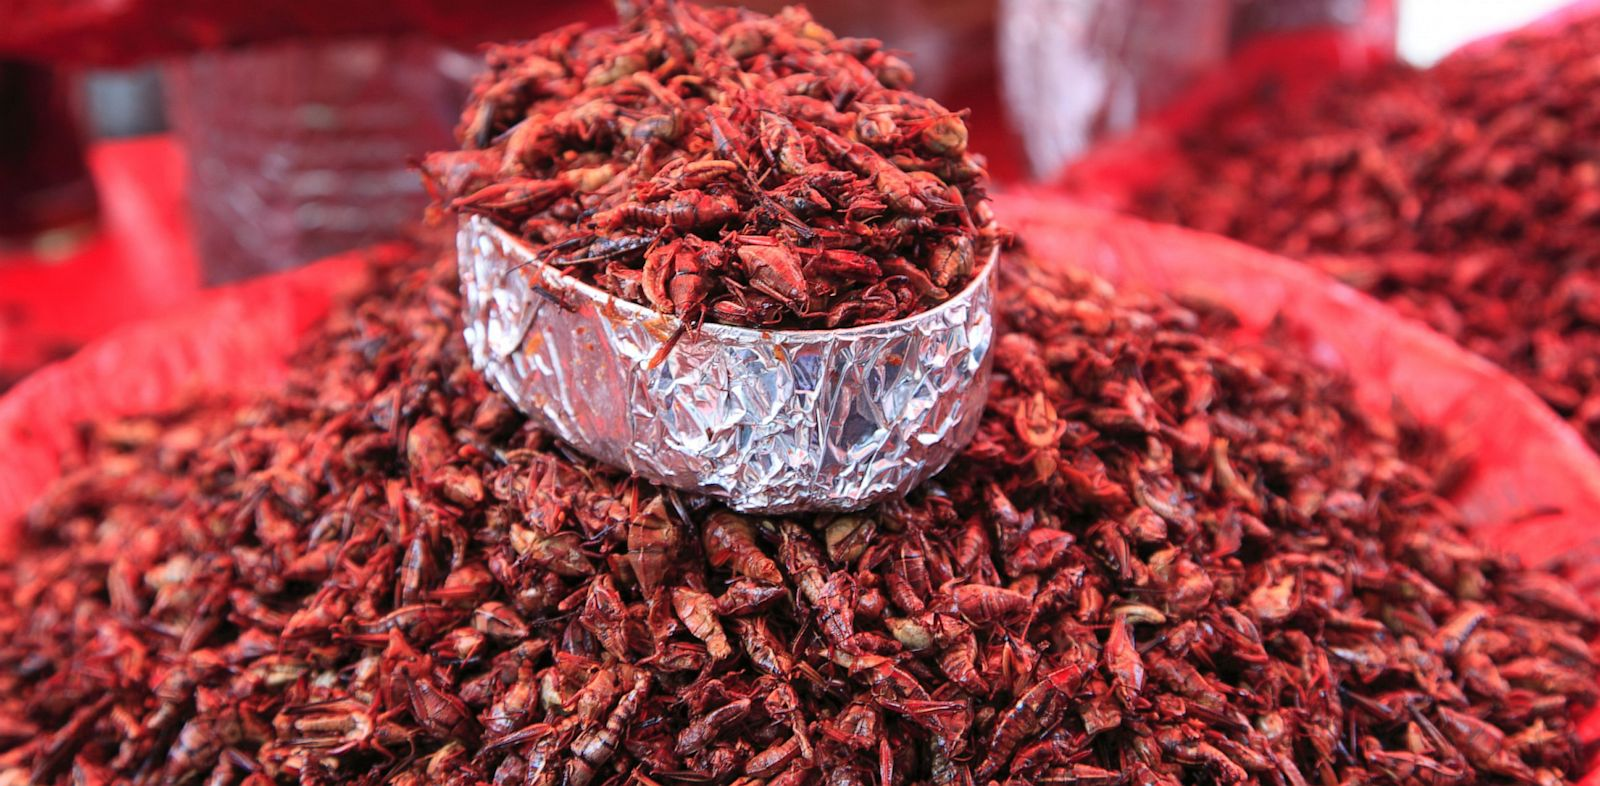 PHOTO: Grasshoppers at a market near Oaxaca, Mex.